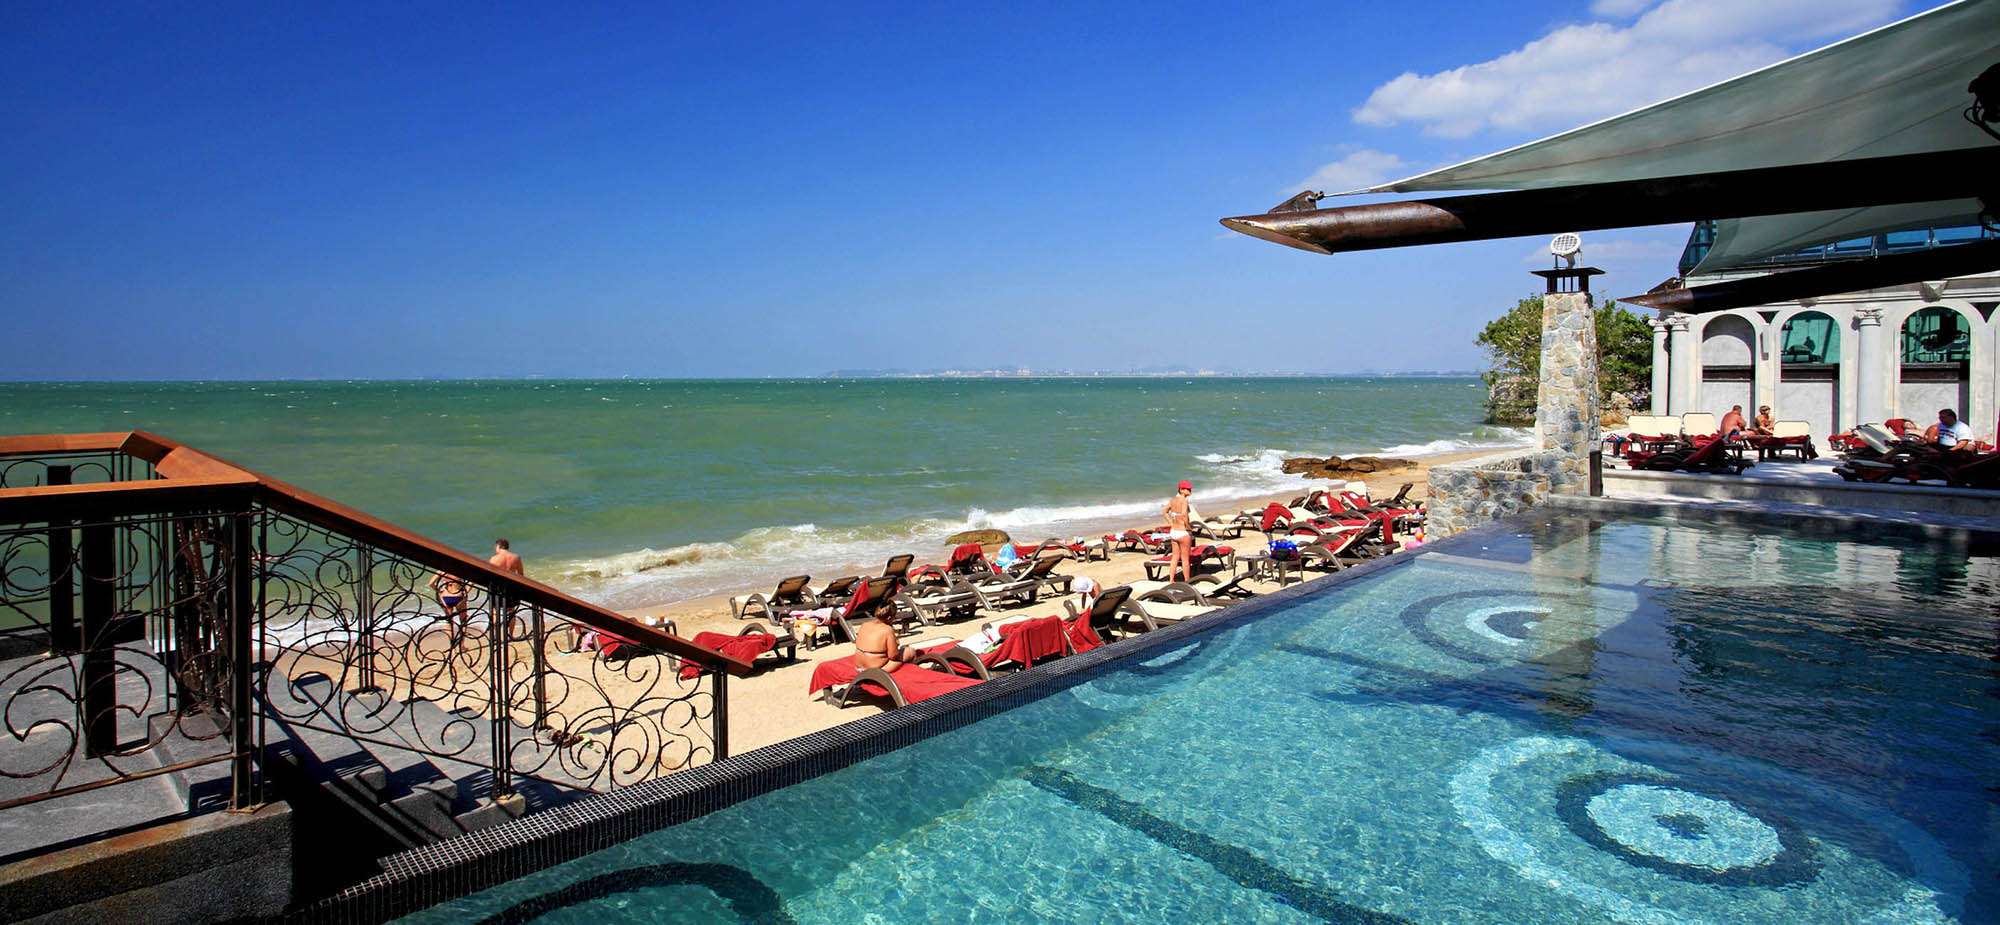 10 Best Hotels Naklua bay Pattaya - Thailand-Explored